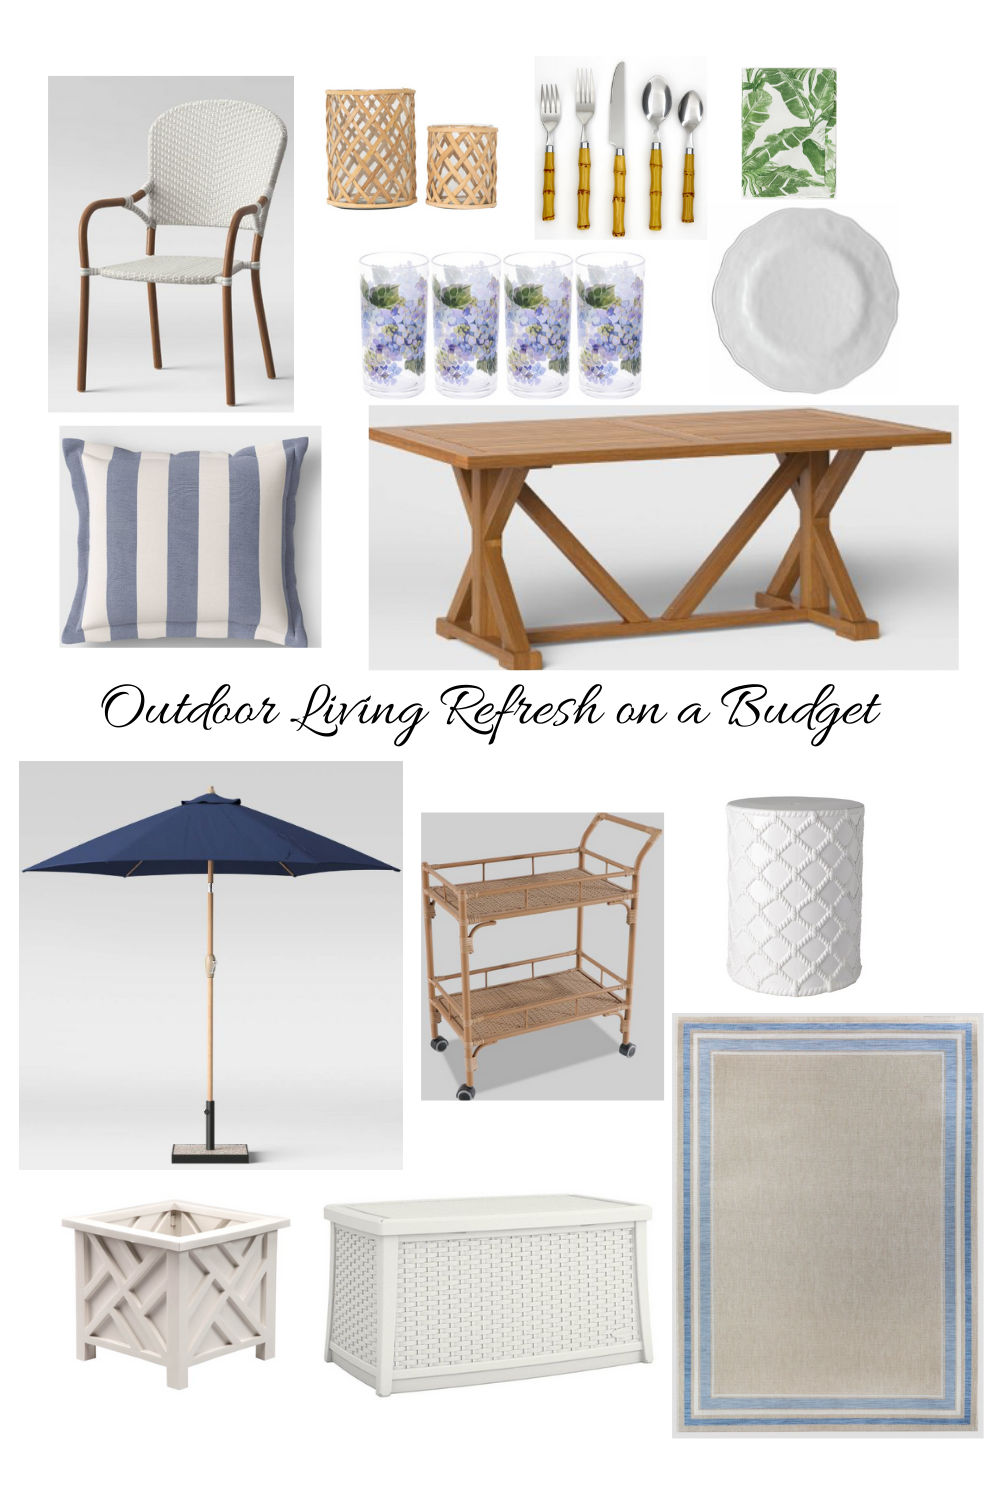 Outdoor Living Refresh on a Budget